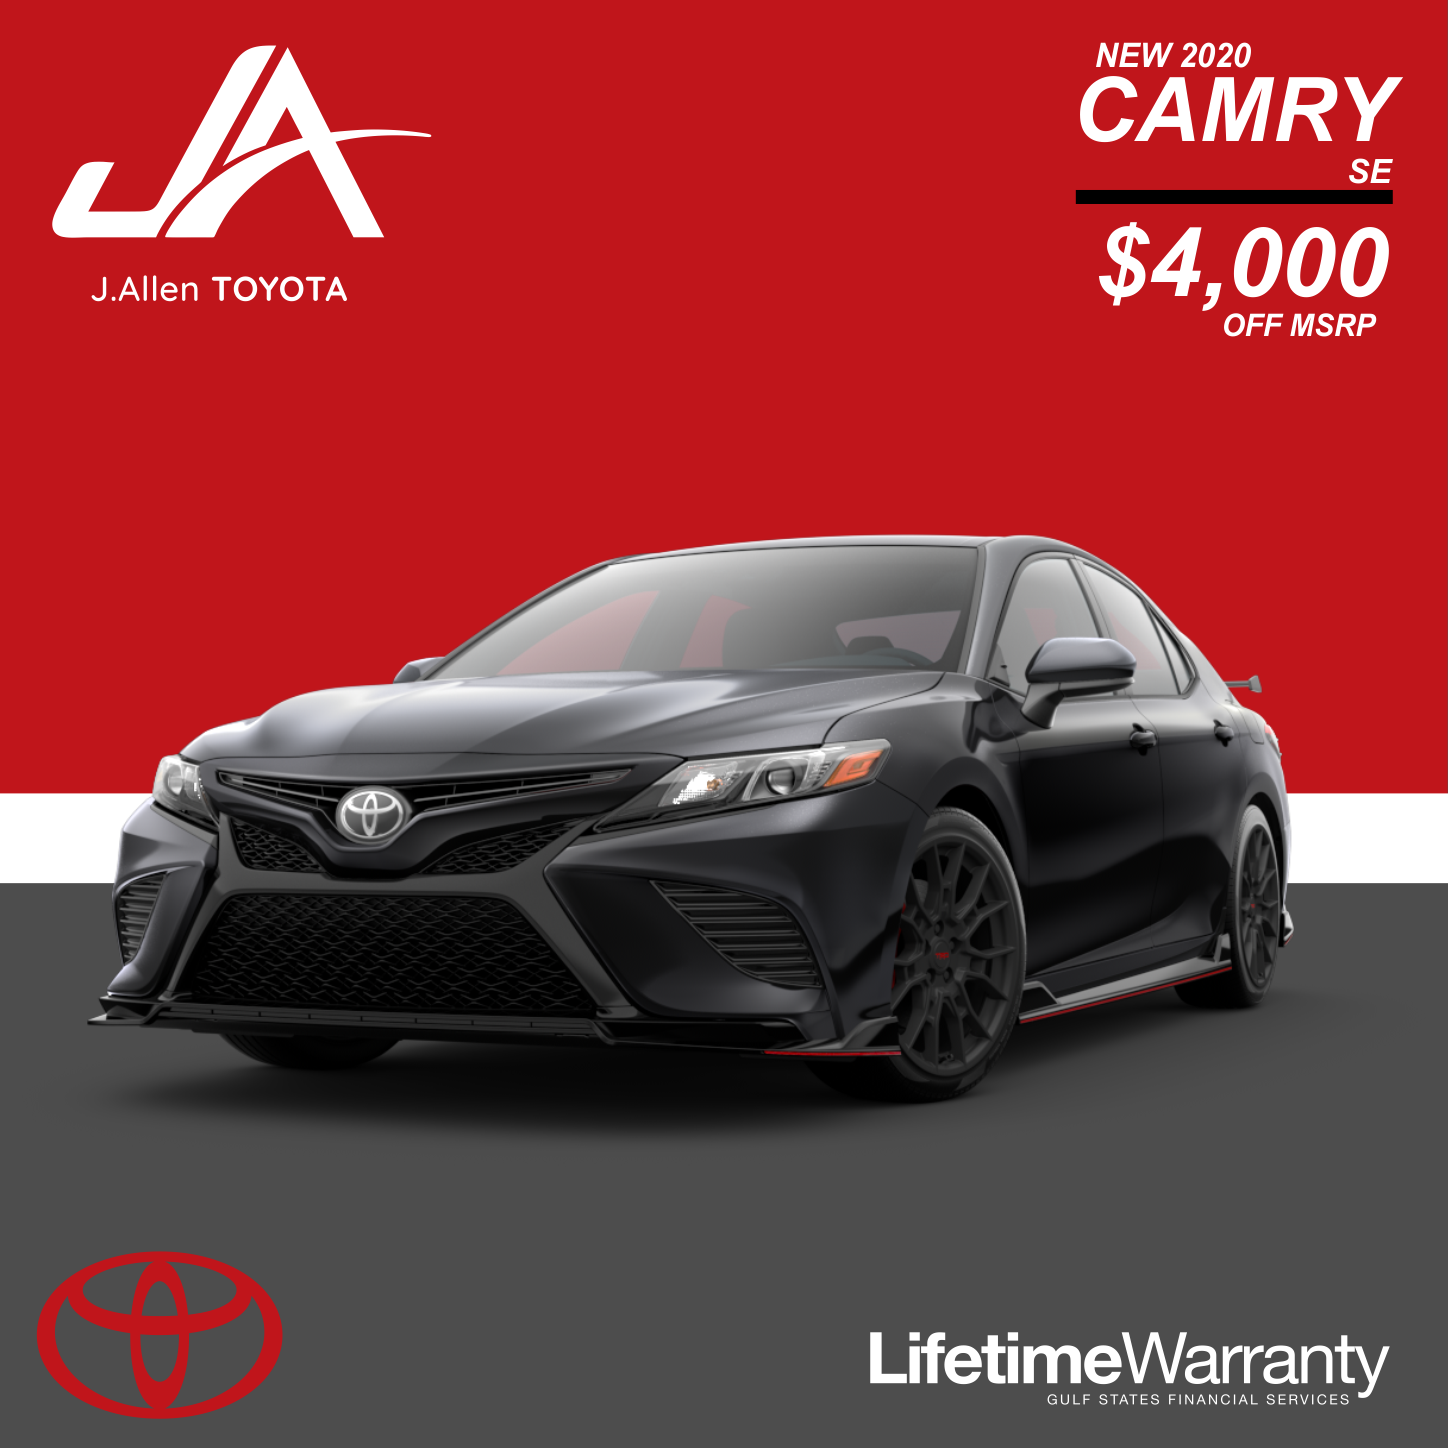 Save $$ on a new Camry